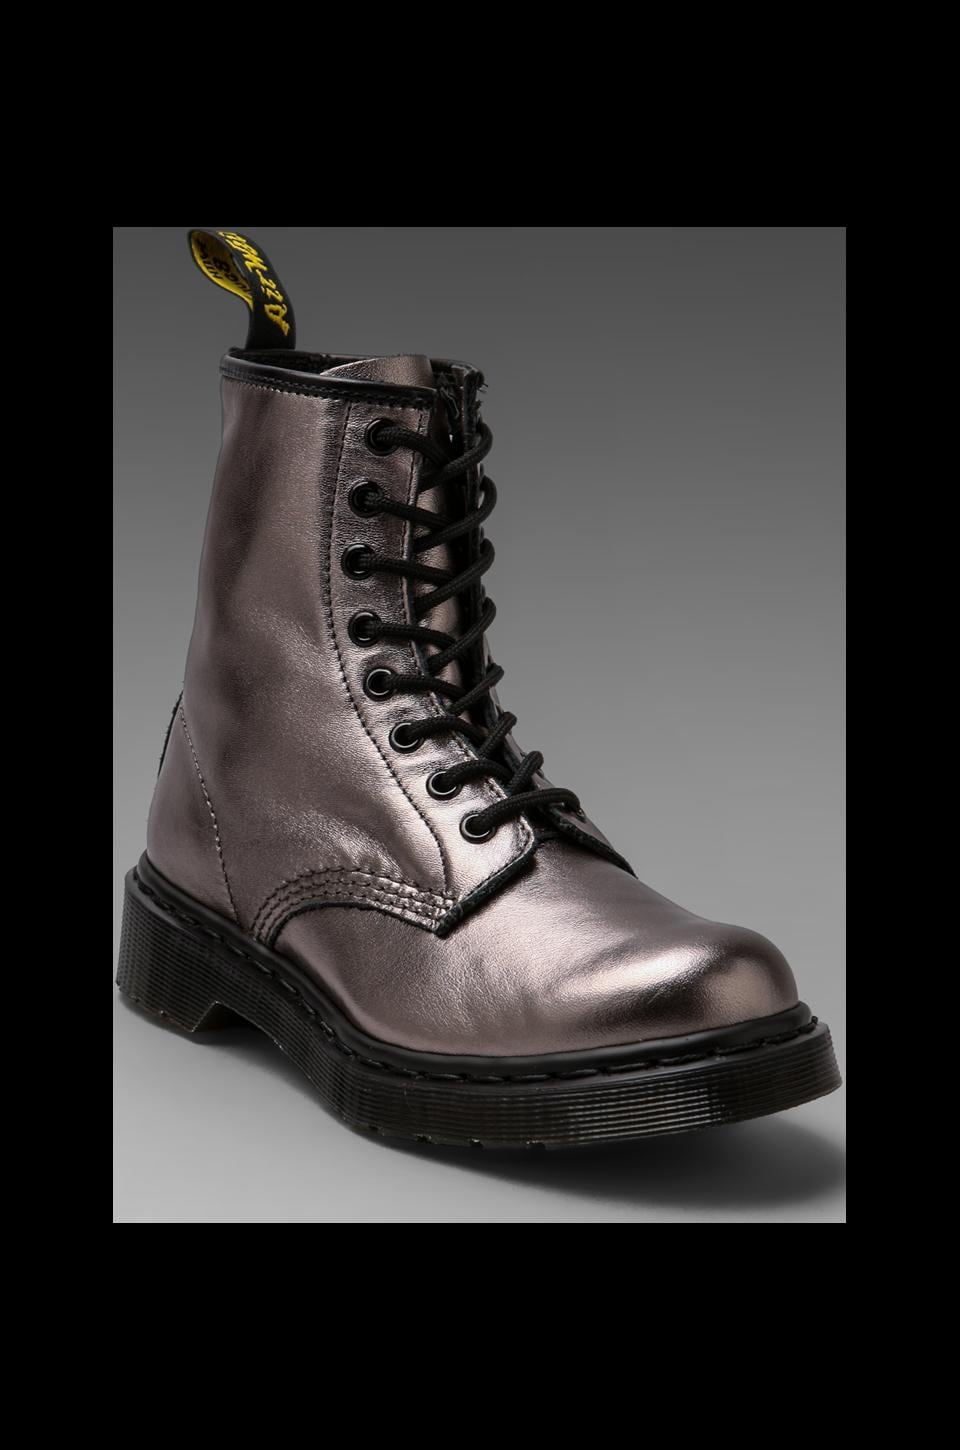 Dr. Martens 8-Eye Boot in Pewter